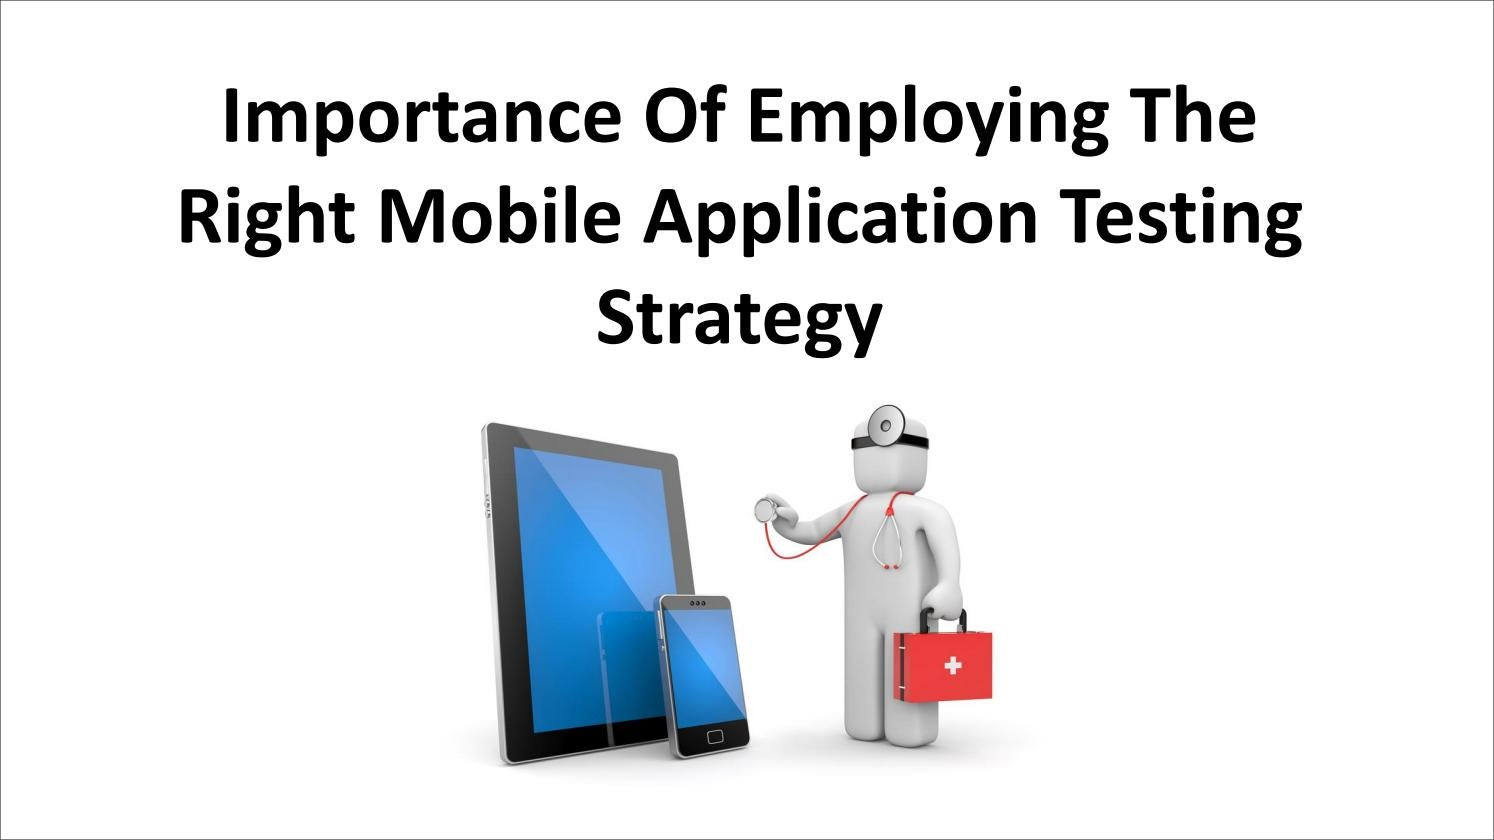 Importance of employing the right mobile application testing strategy